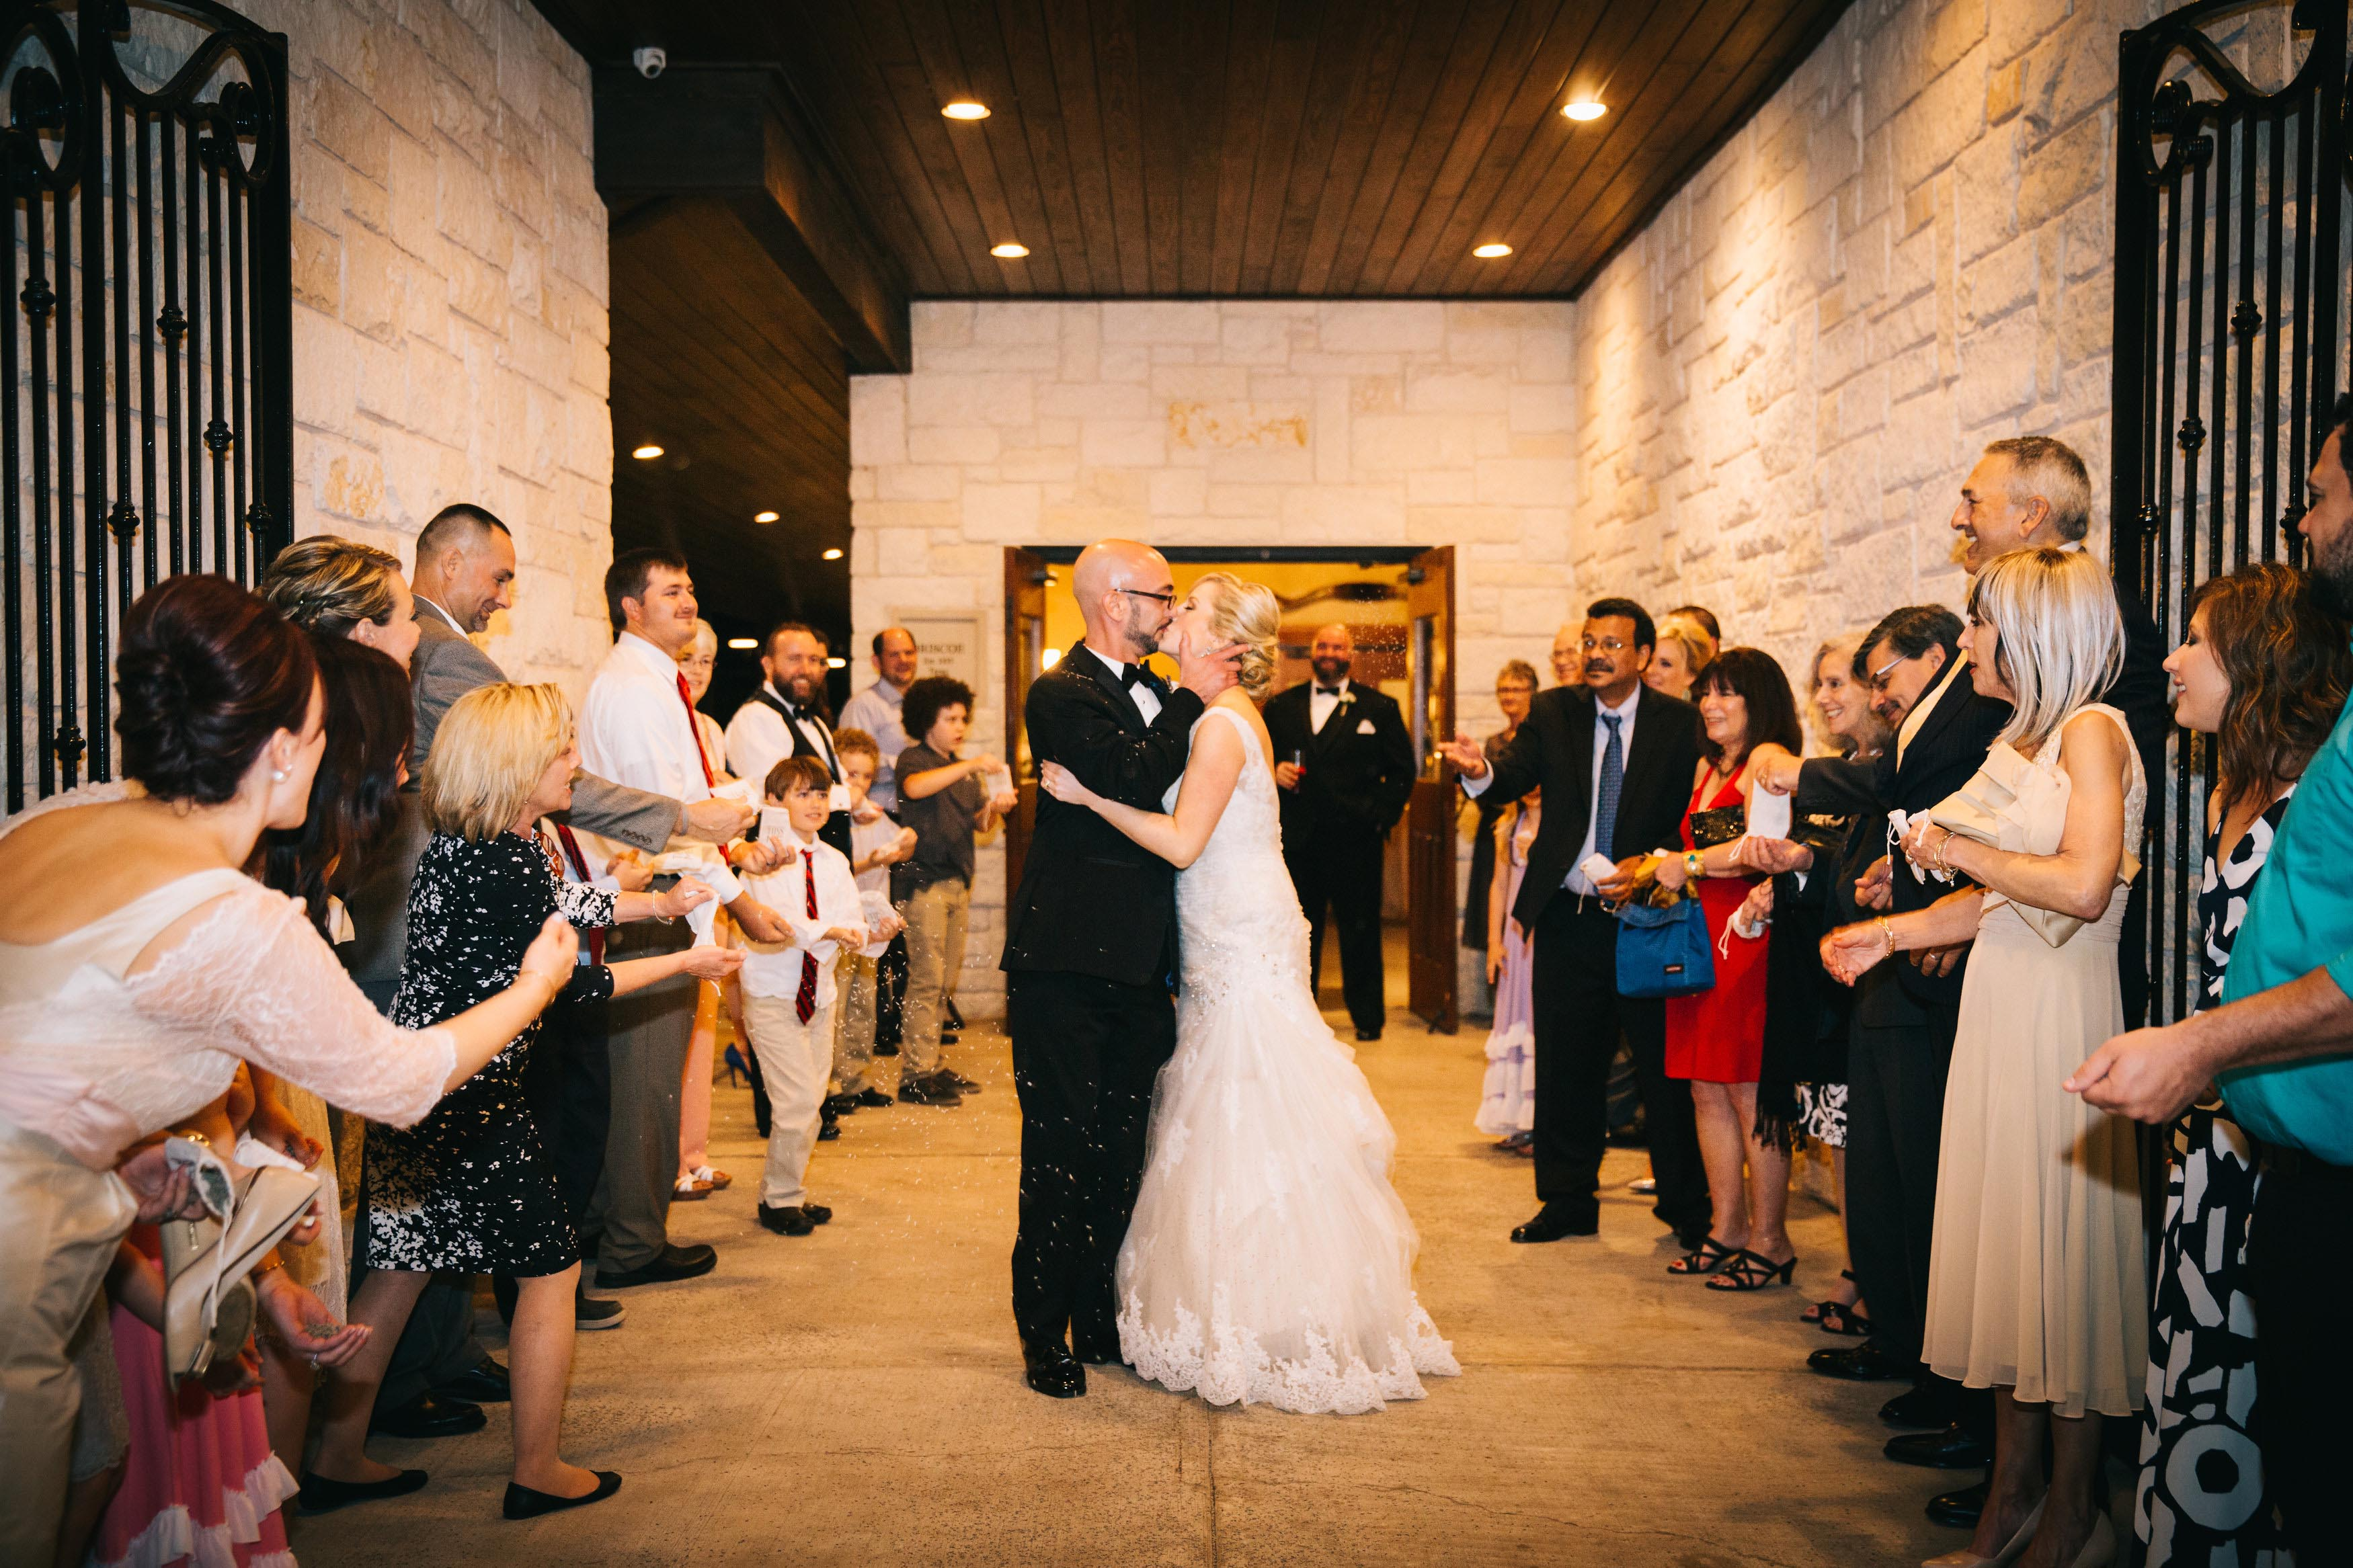 photos-of-wedding-departures-at-briscoe-manor-010